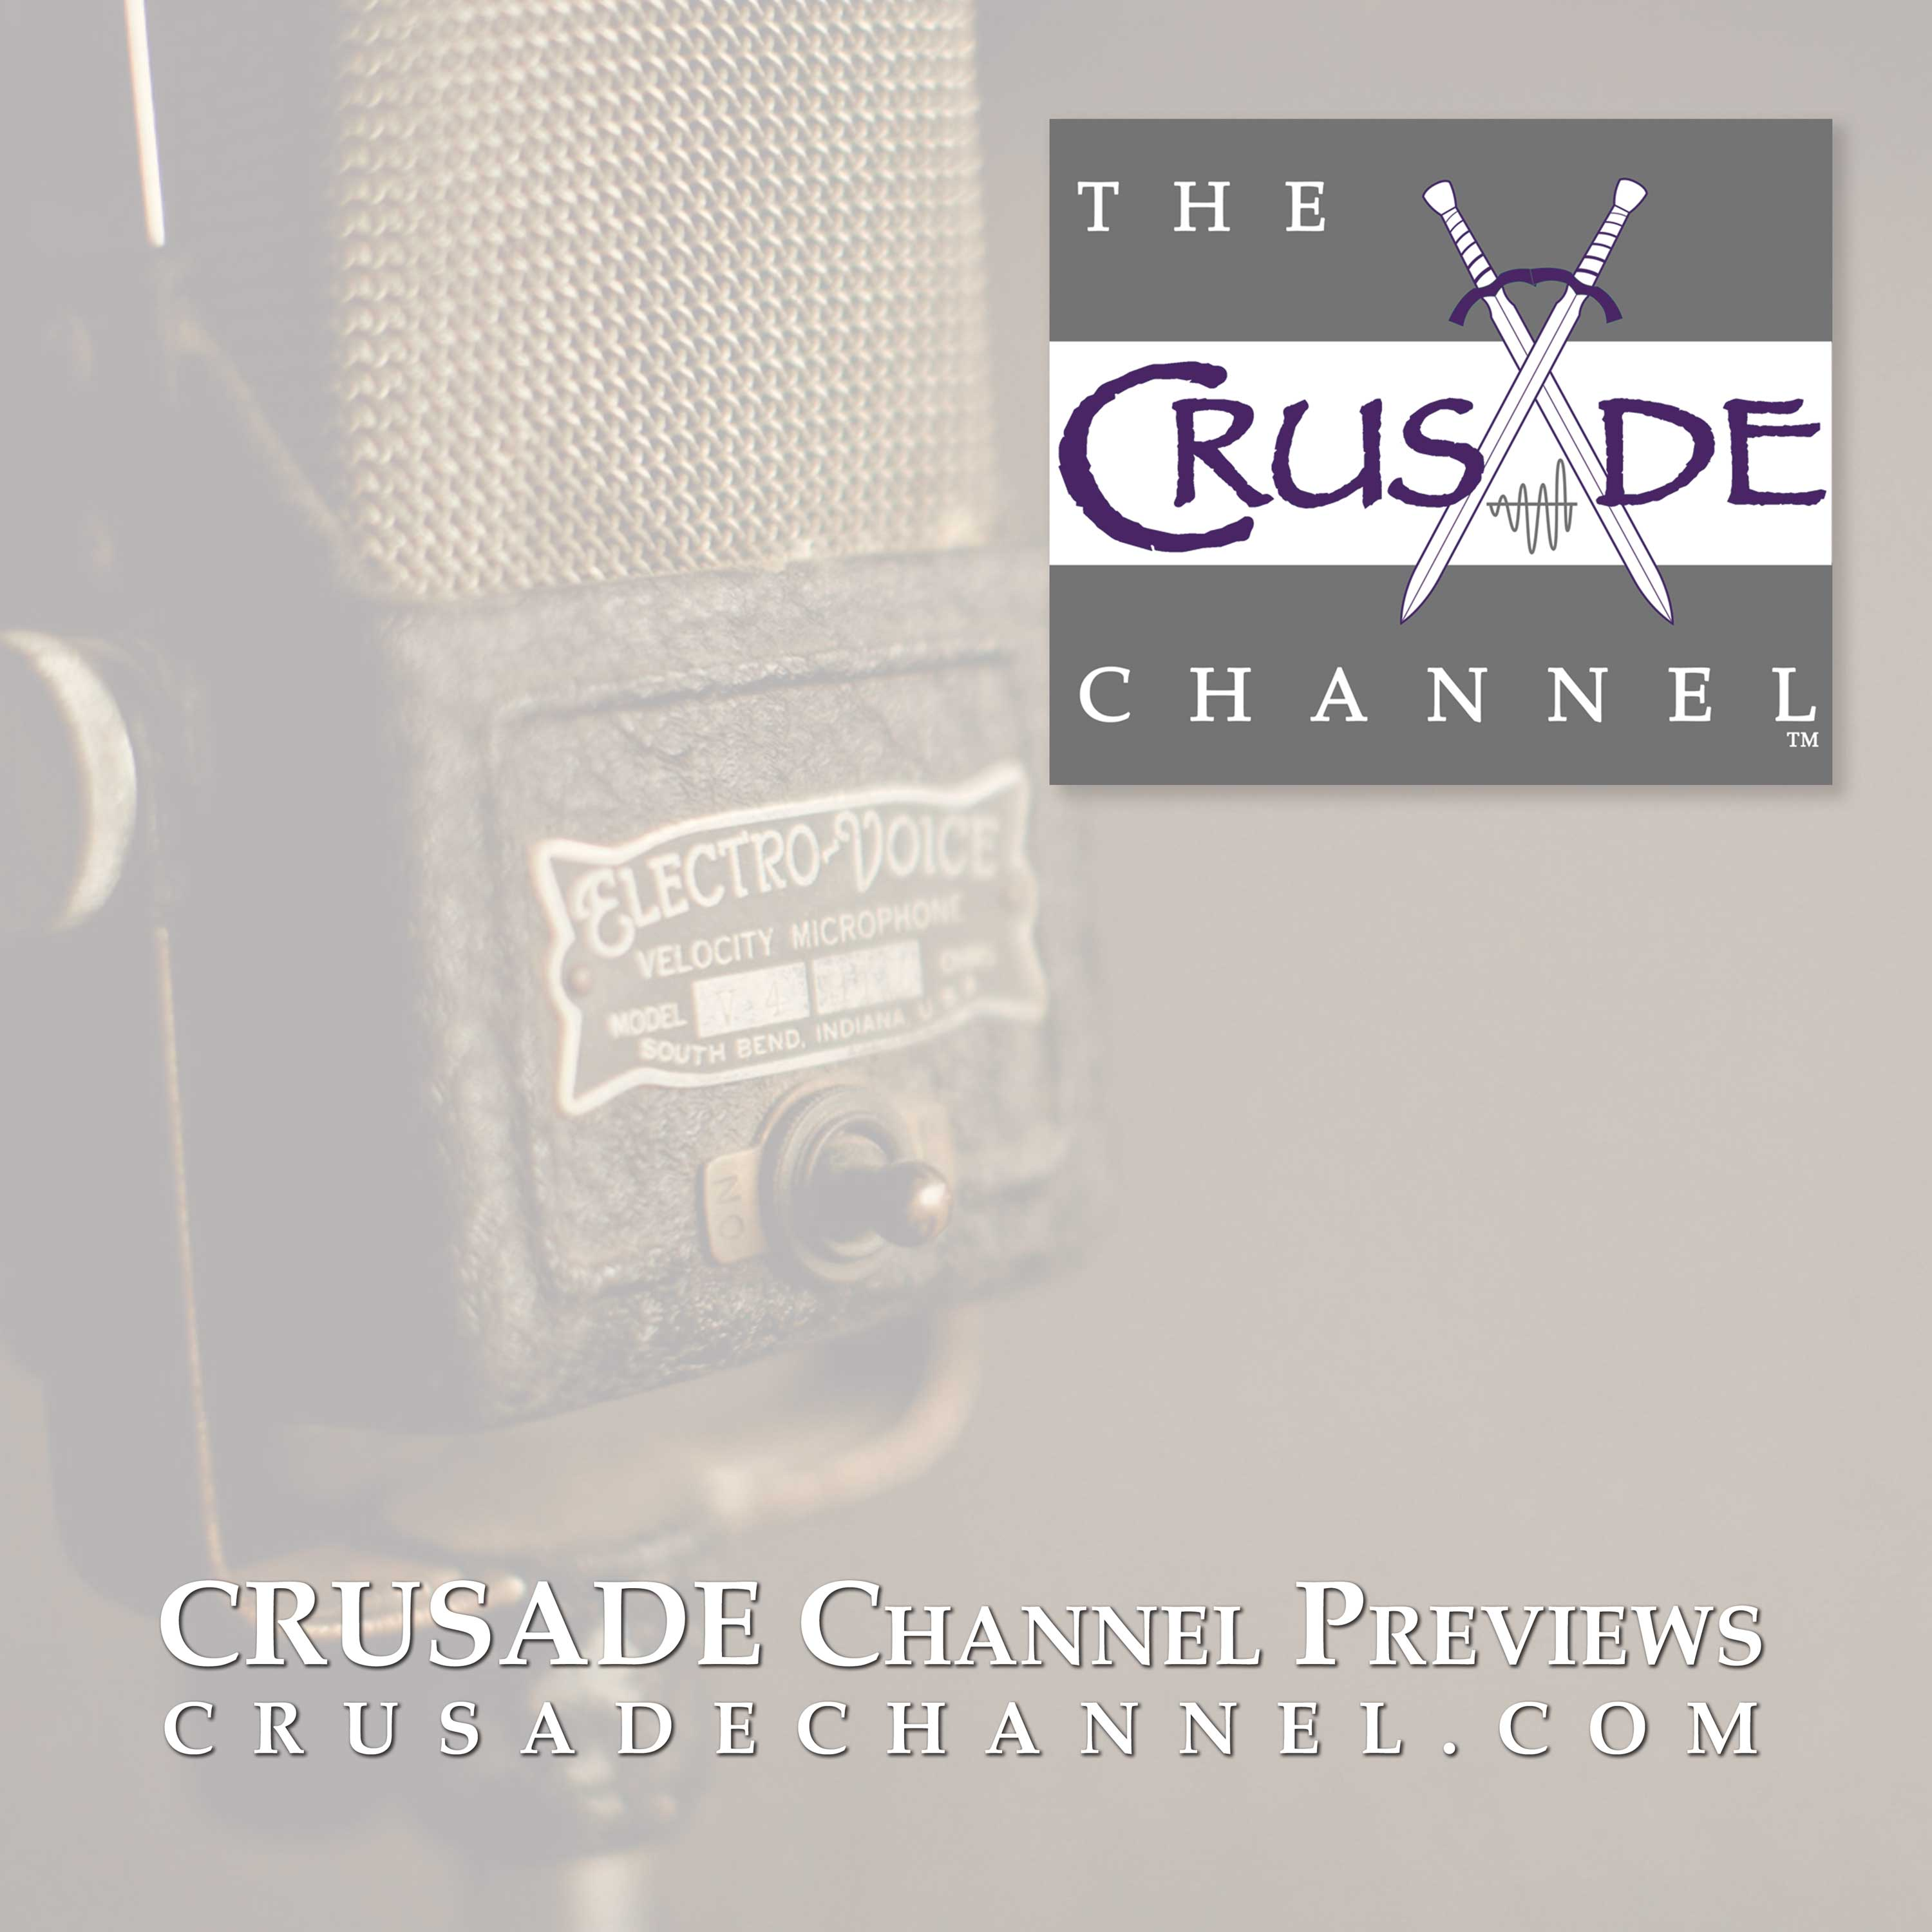 CRUSADE Channel Previews